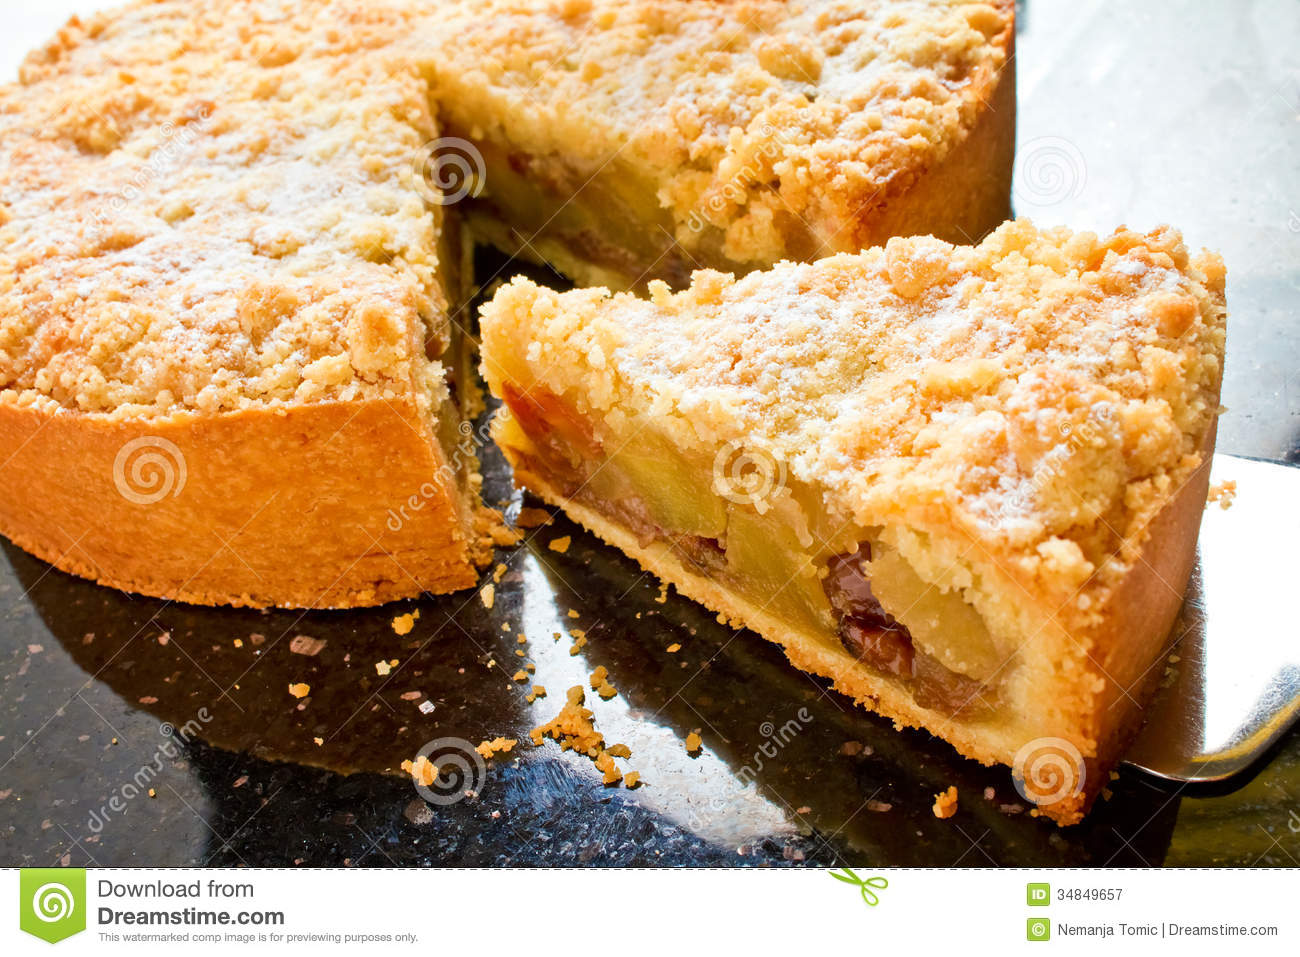 Apple Pie Royalty Free Stock Photography - Image: 34849657